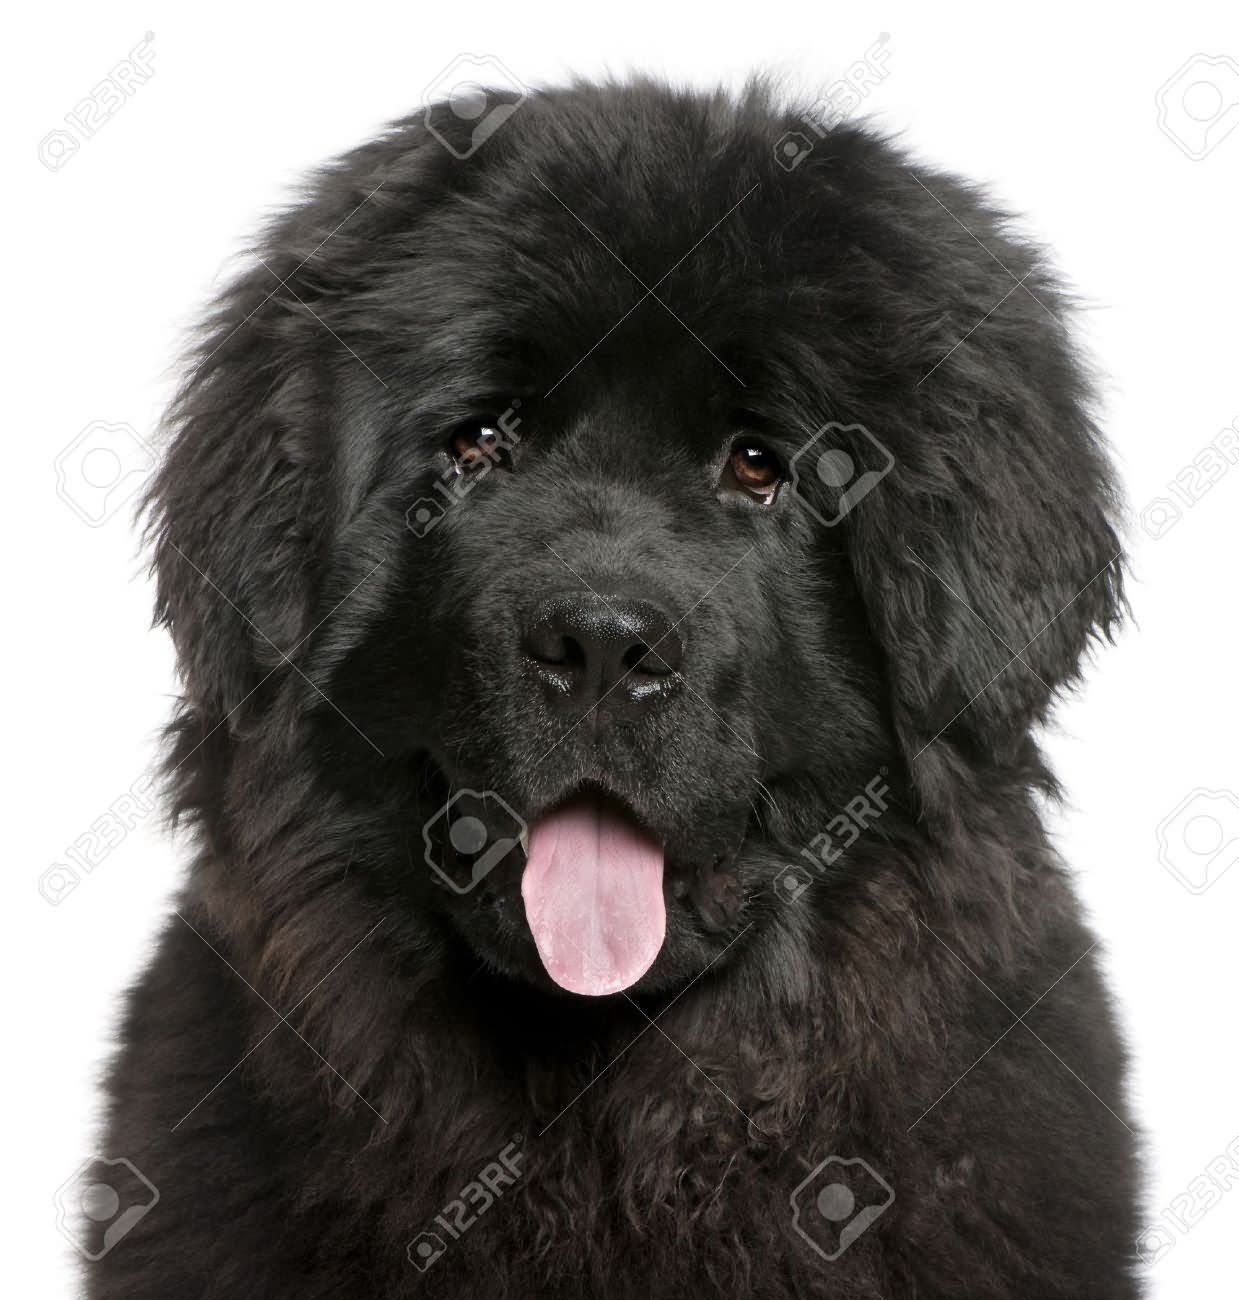 35 very beautiful newfoundland dog pictures - 6 Months Old Closeup Of Newfoundland Puppy